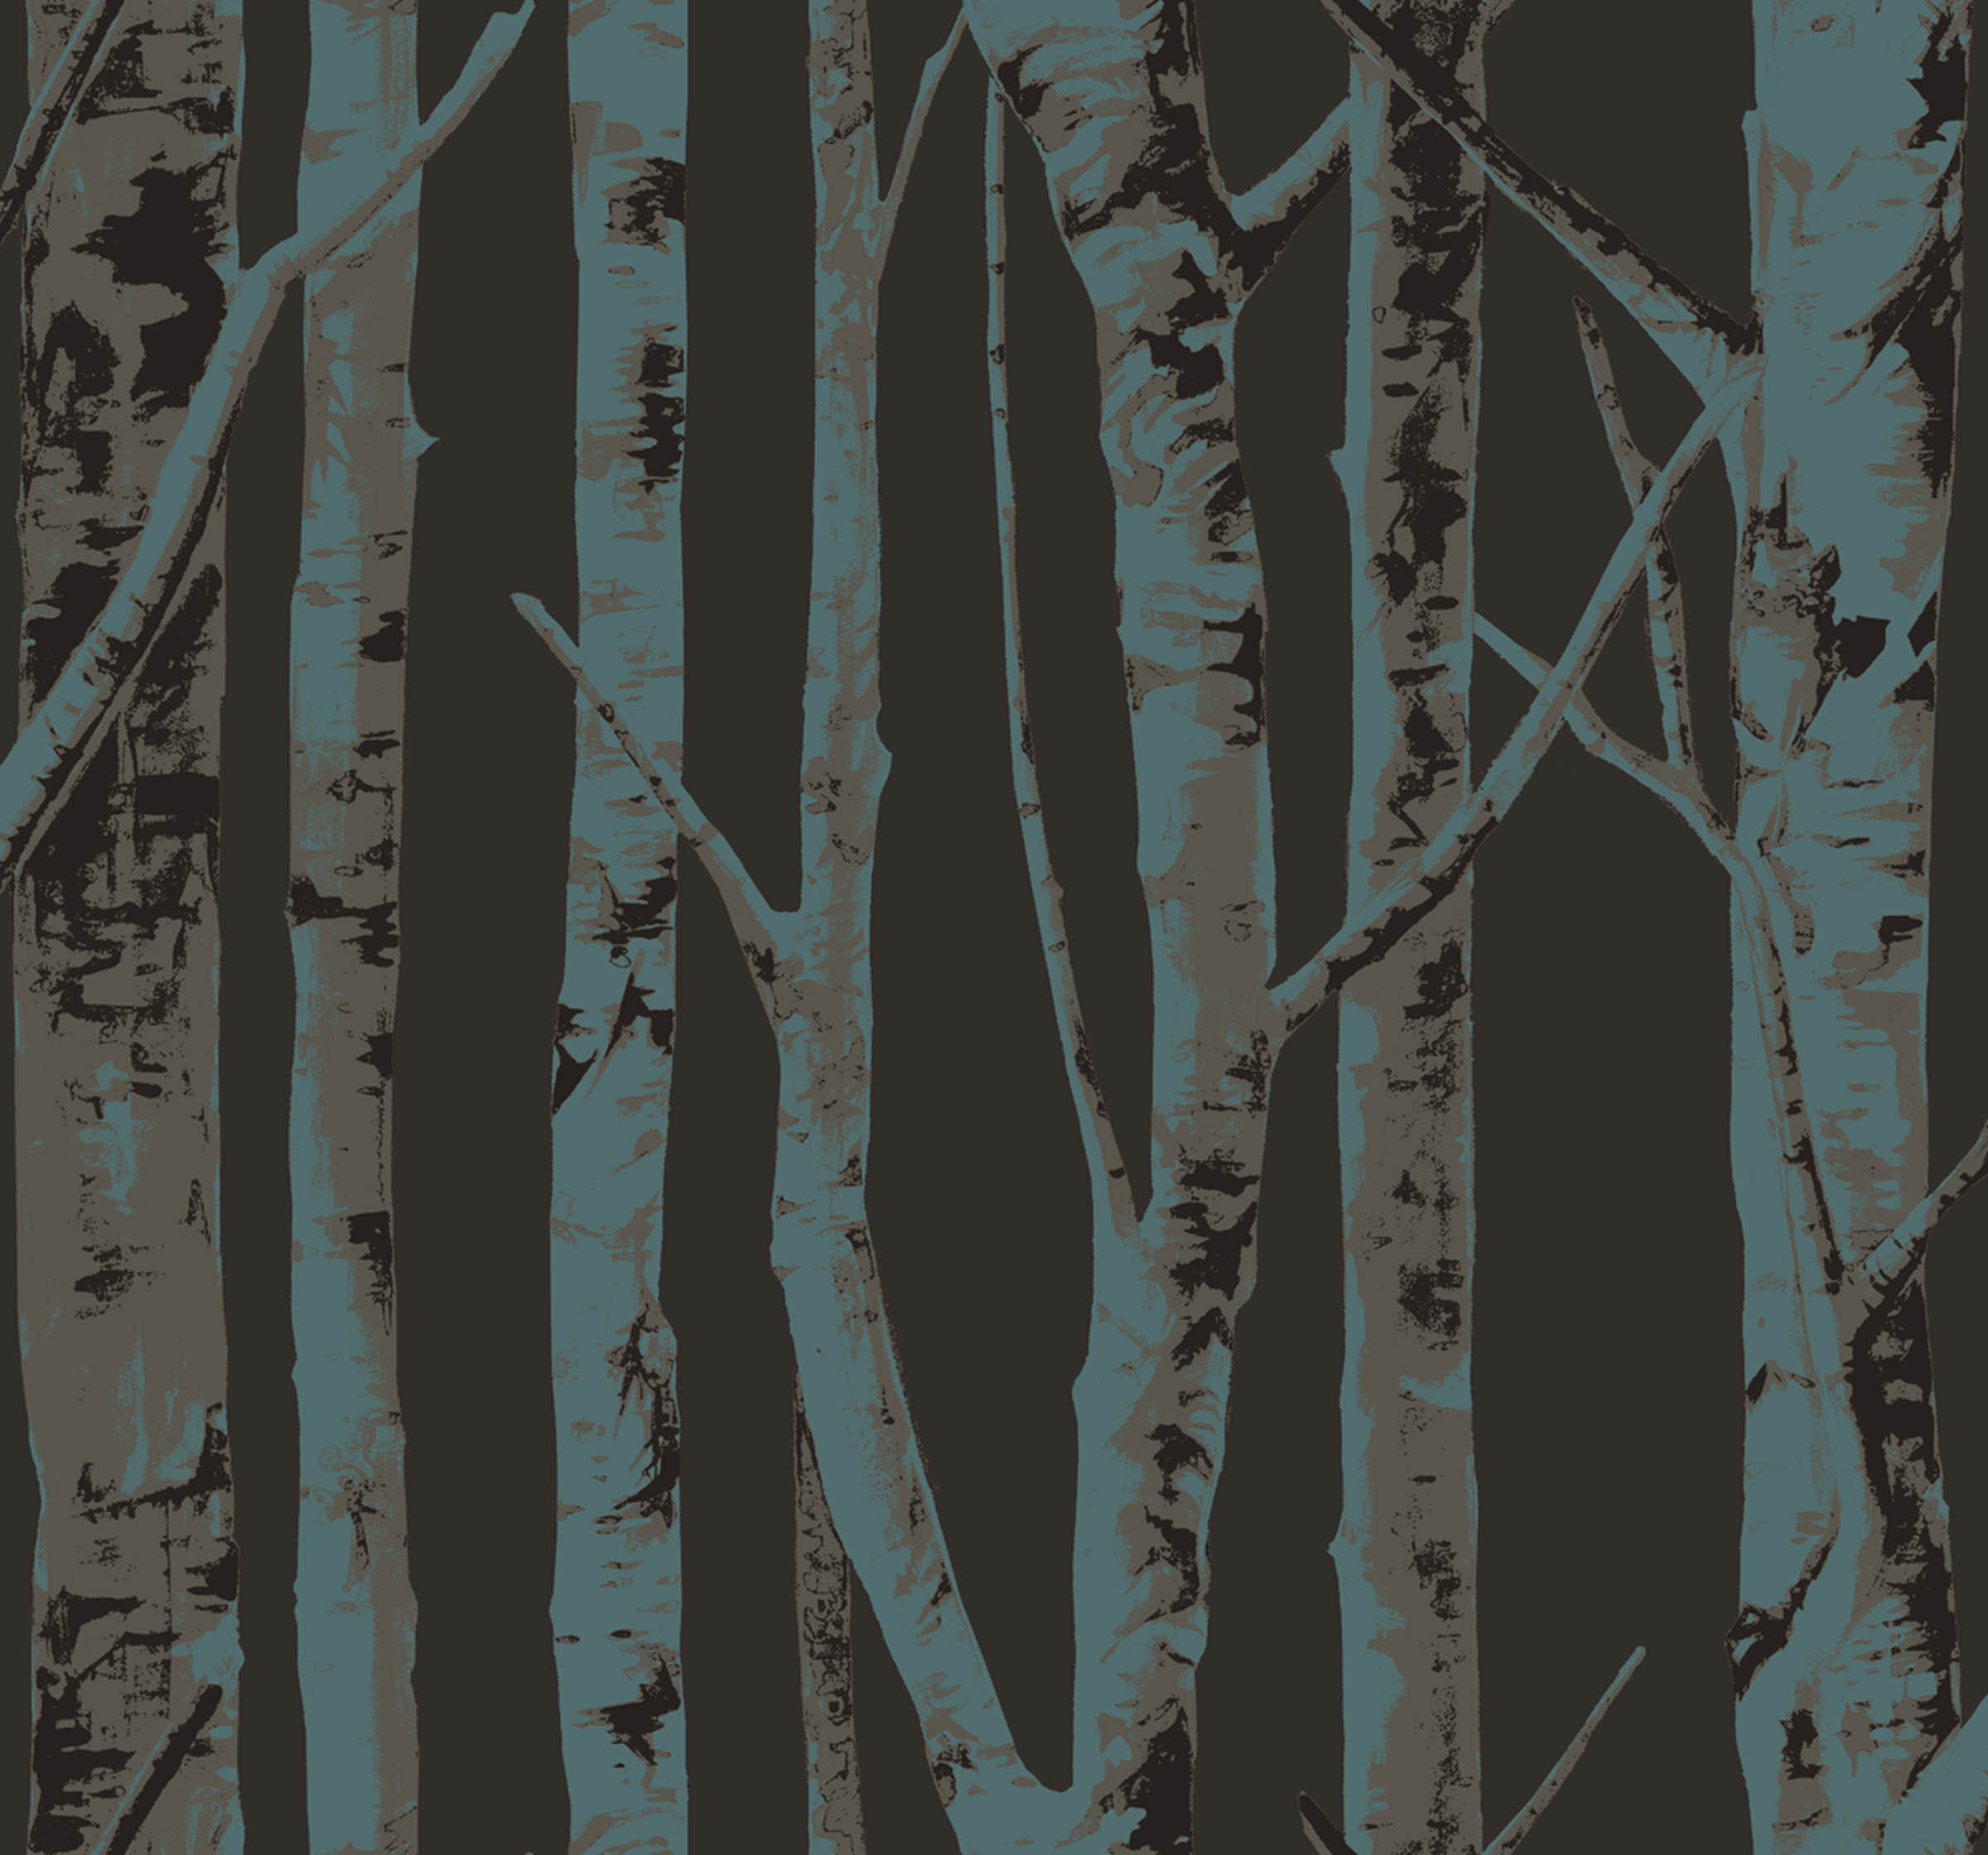 birch trees design from sandpiper studios eco chic wallpaper 2400x2240